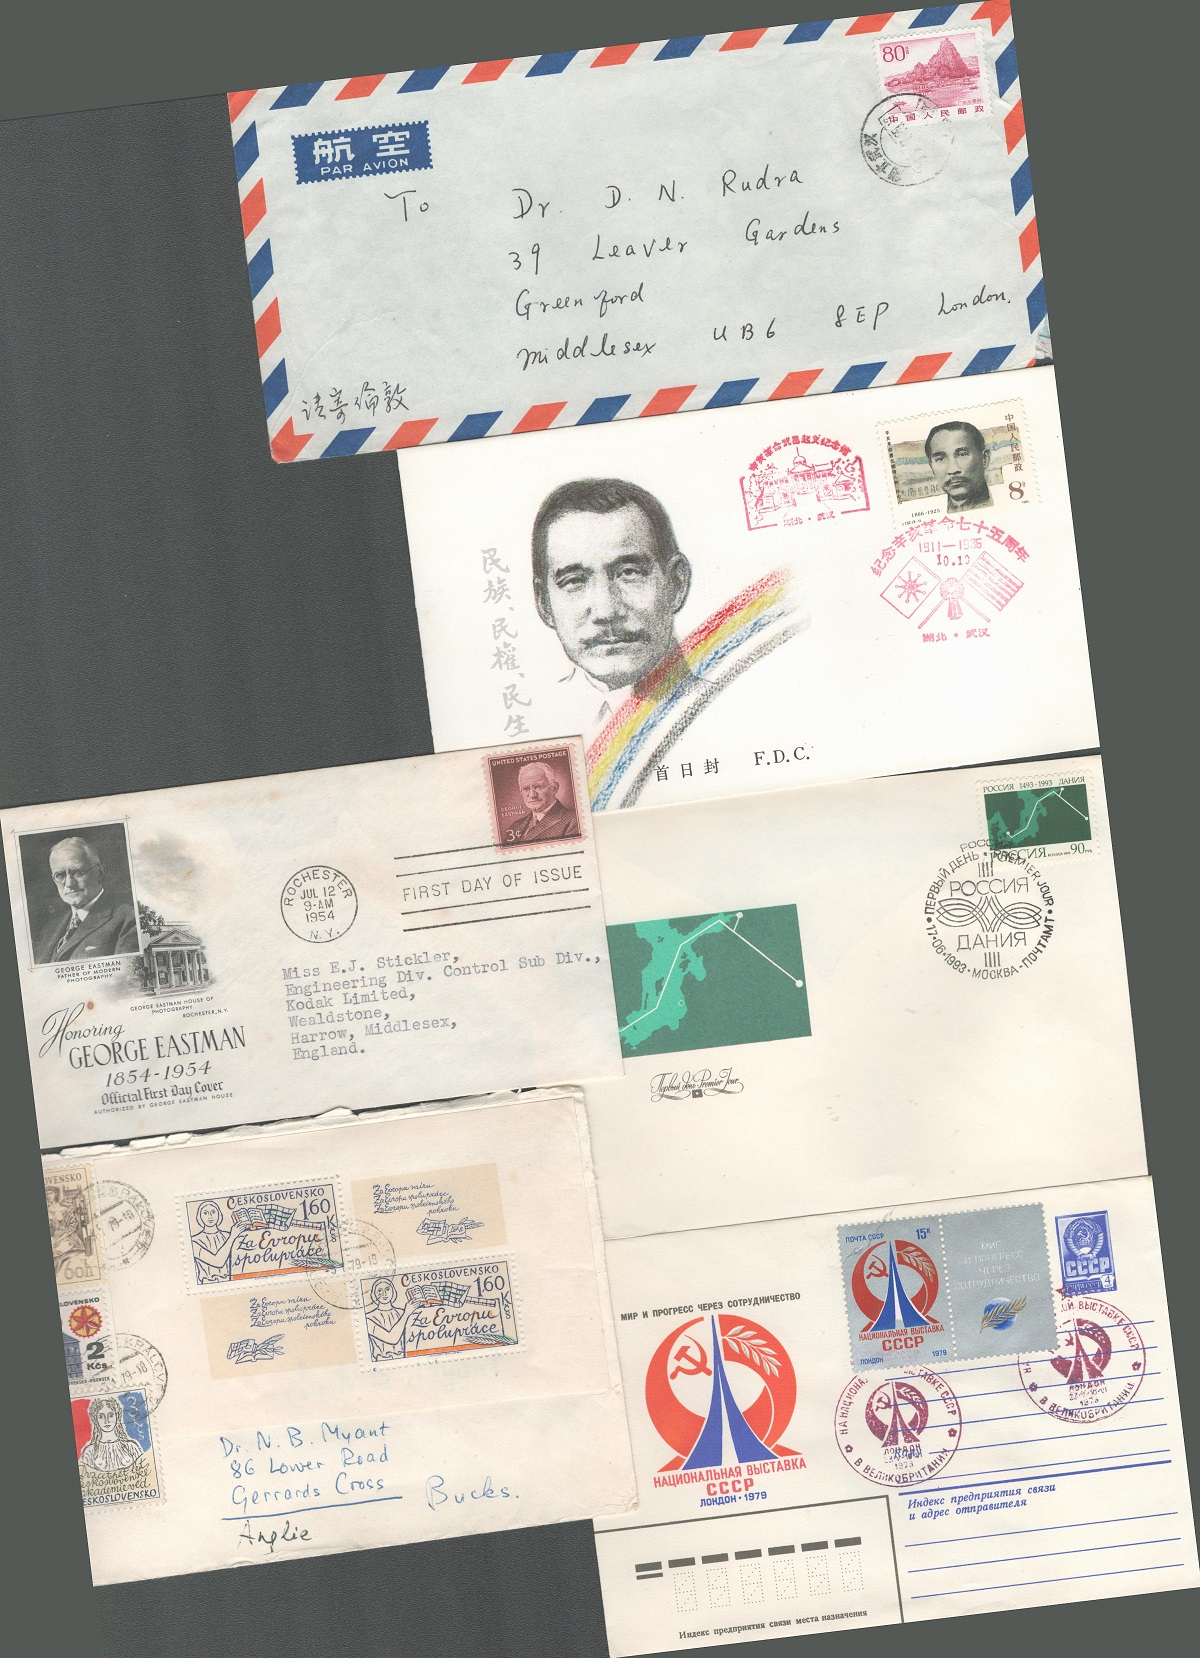 Cover collection. 13 in total mostly FDC's. Includes 6 Chinese, 1 Polish, 1 Russian, 1 Czech and 4